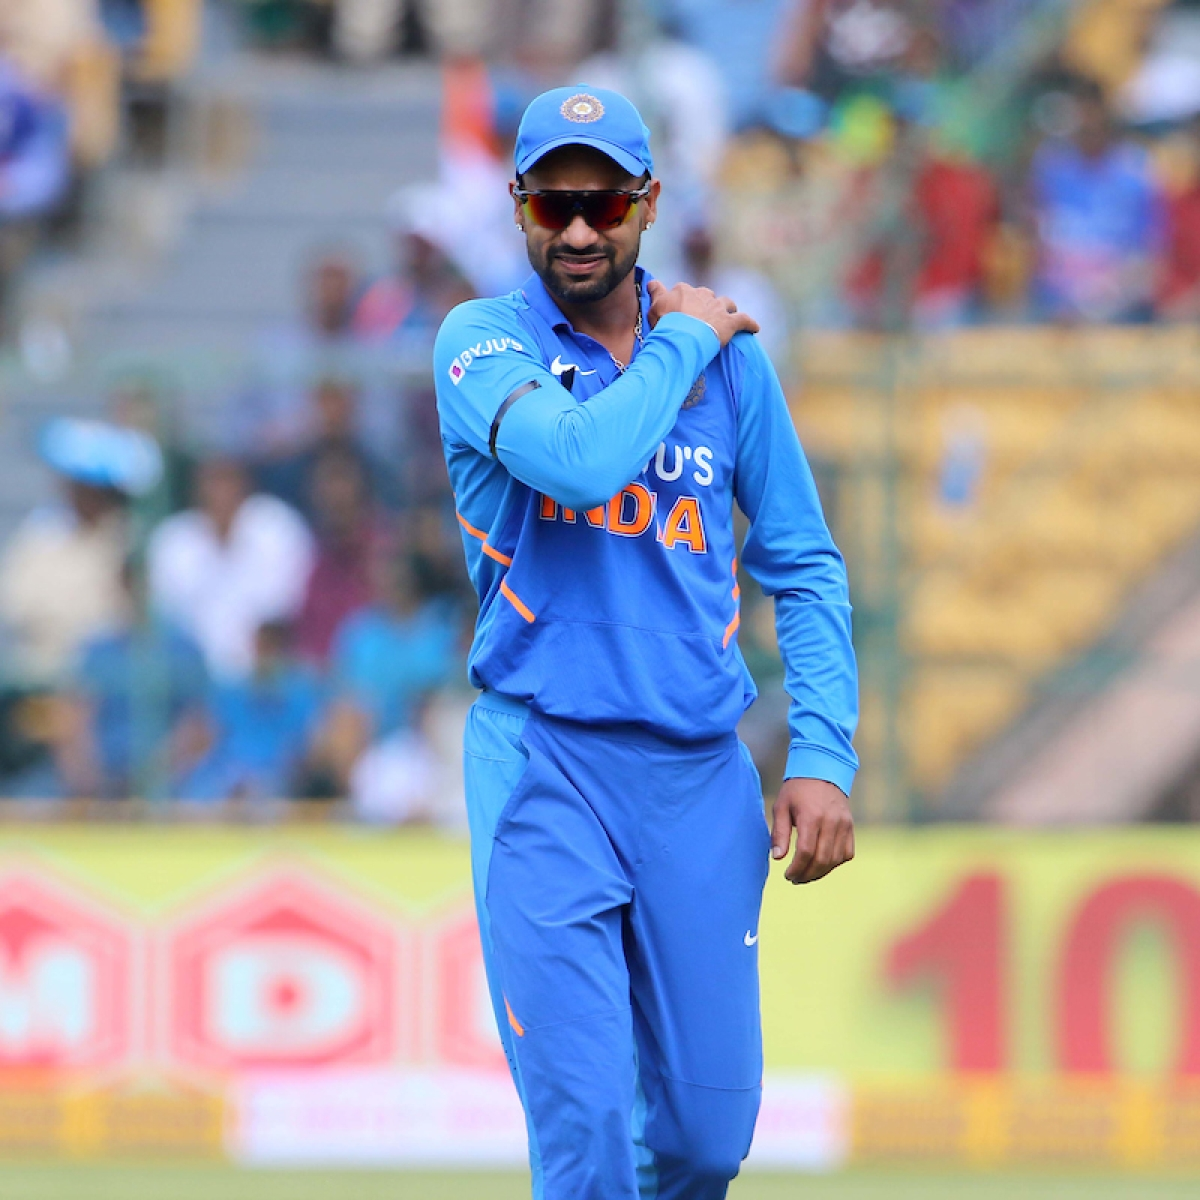 Shikhar Dhawan's NZ tour in doubt after shoulder injury against Australia